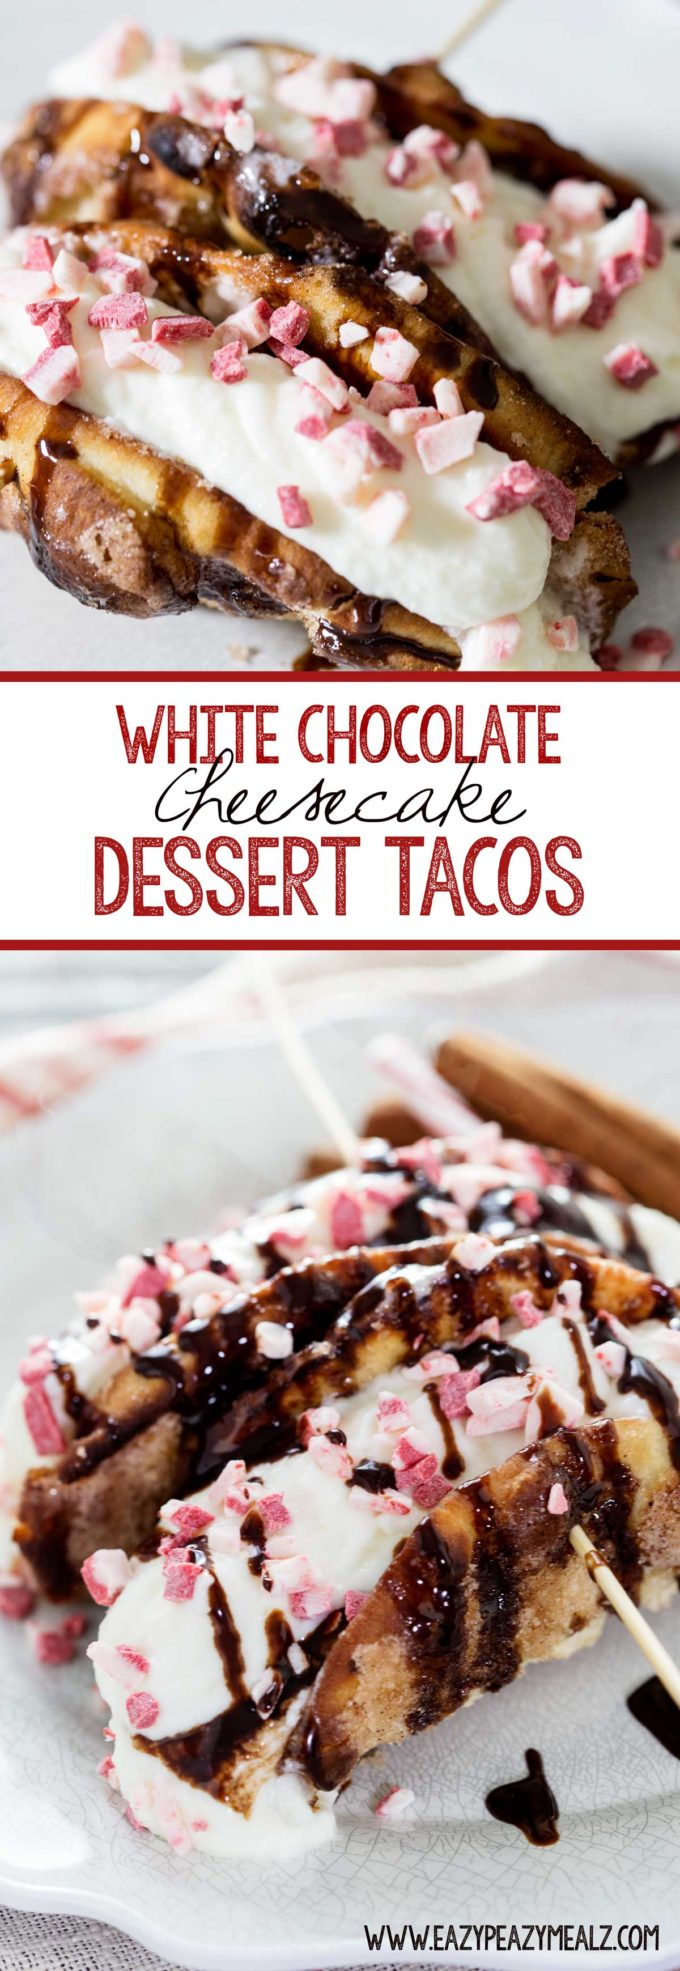 White Chocolate Cheesecake Dessert tacos, peppermint dessert ideas, simple dessert